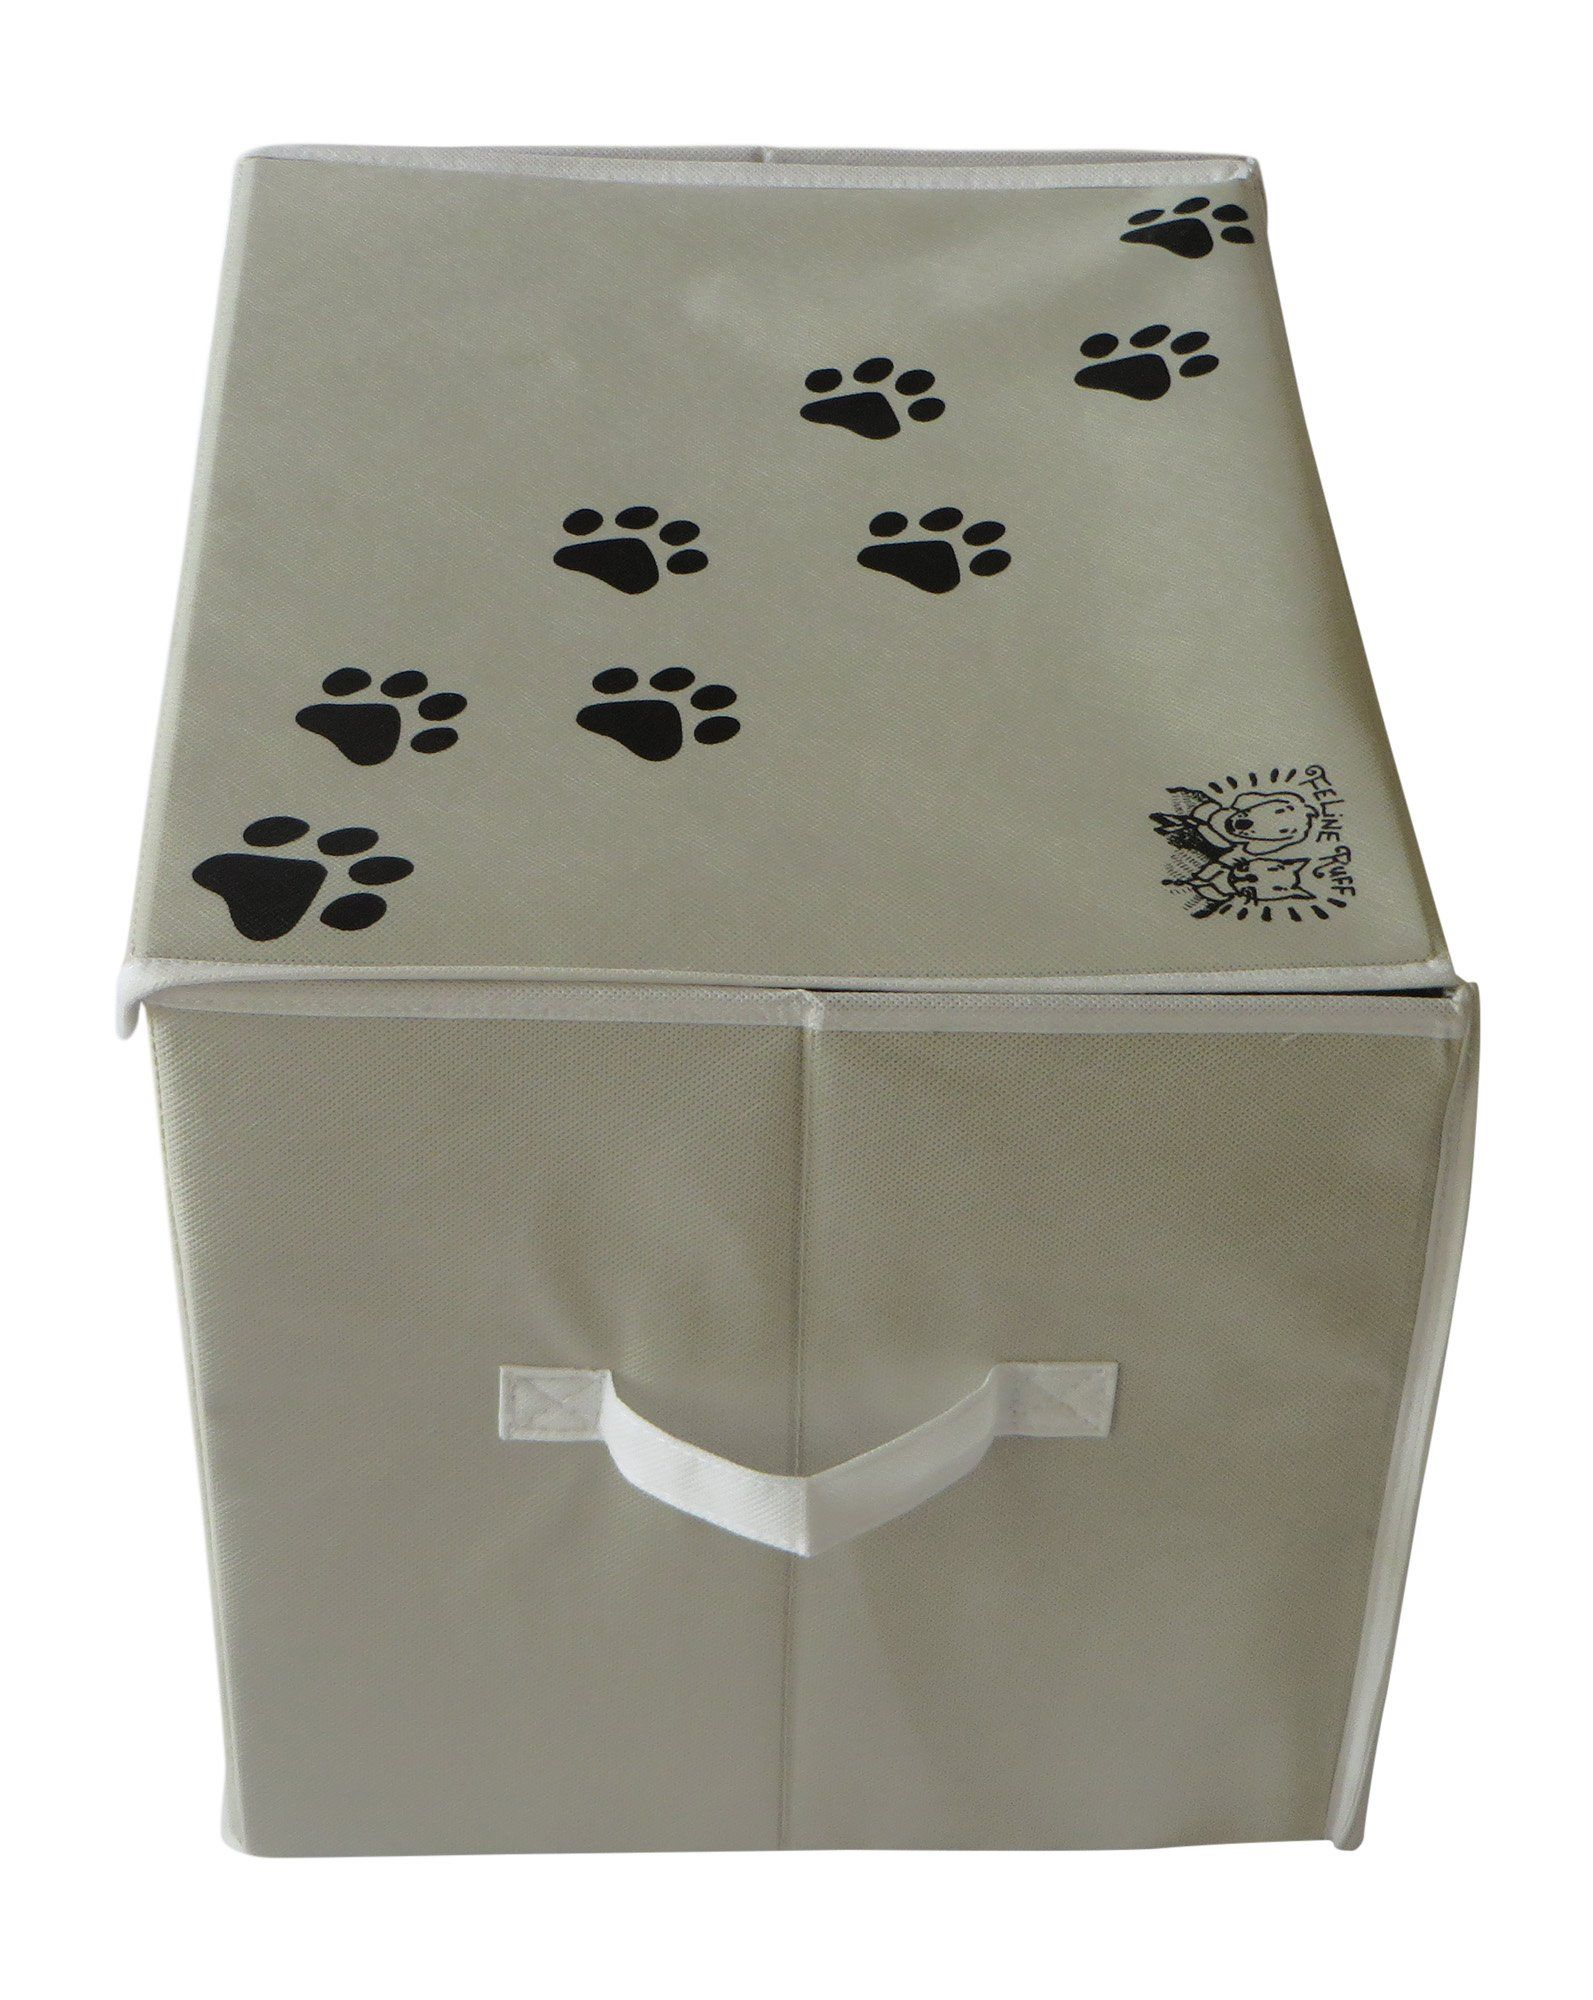 Feline Ruff Large Dog Toys Storage Box 16 X 12 Inch Pet Toy Storage Basket With Lid Perfect Col Dog Toy Storage Storage Baskets With Lids Toy Storage Baskets